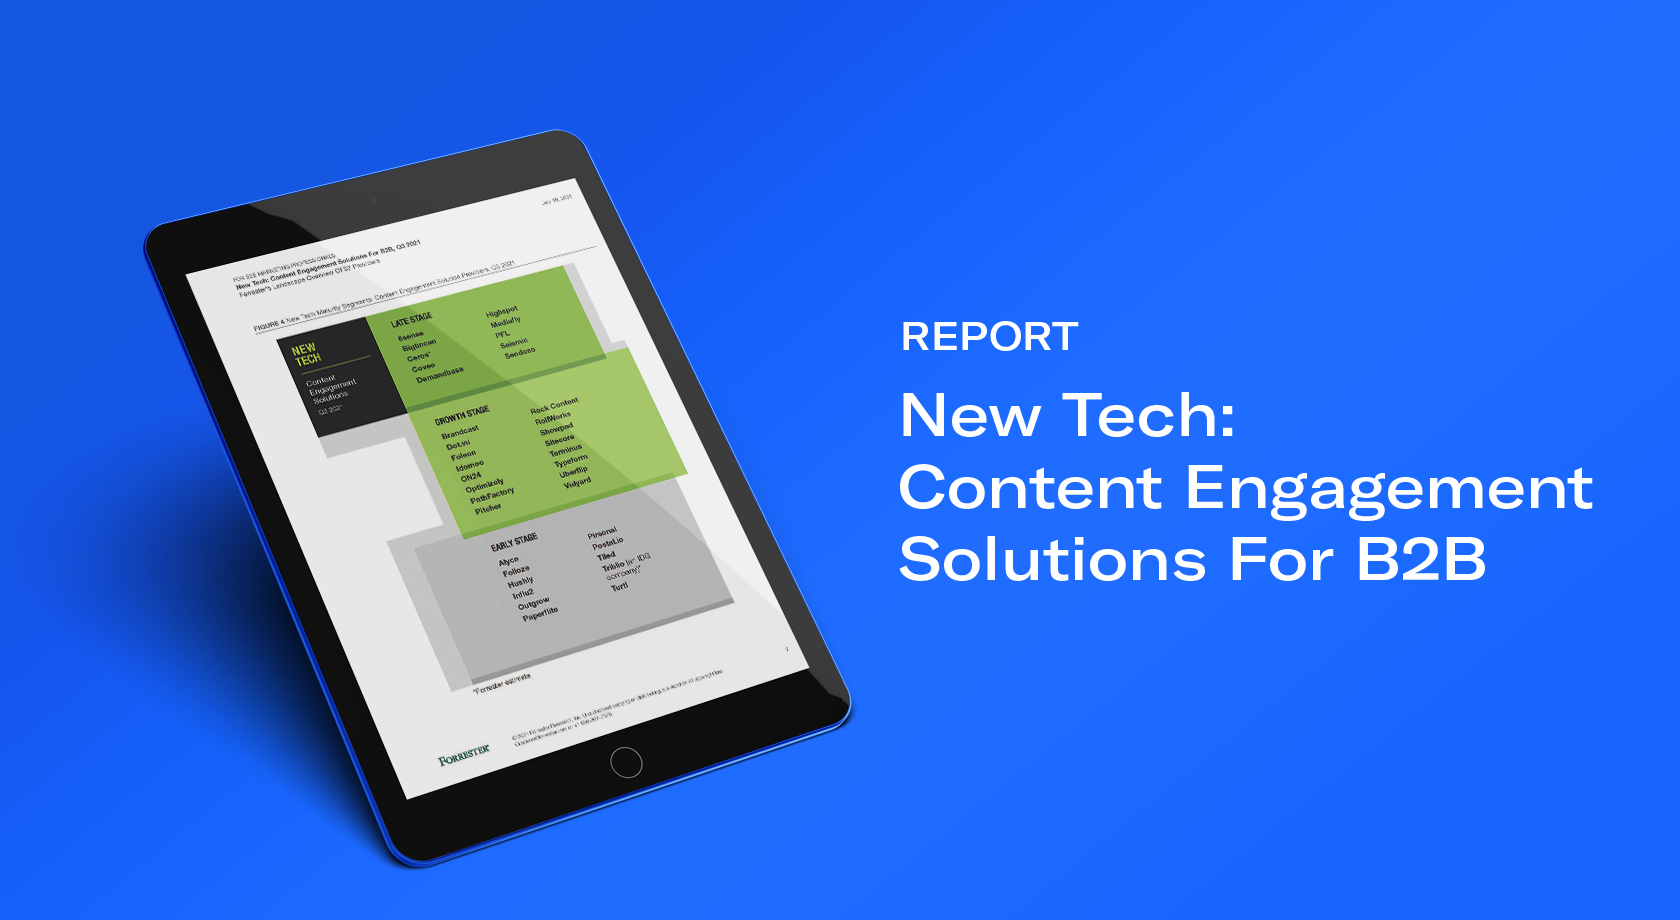 Uberflip Recognized in B2B Content Engagement Solution Report